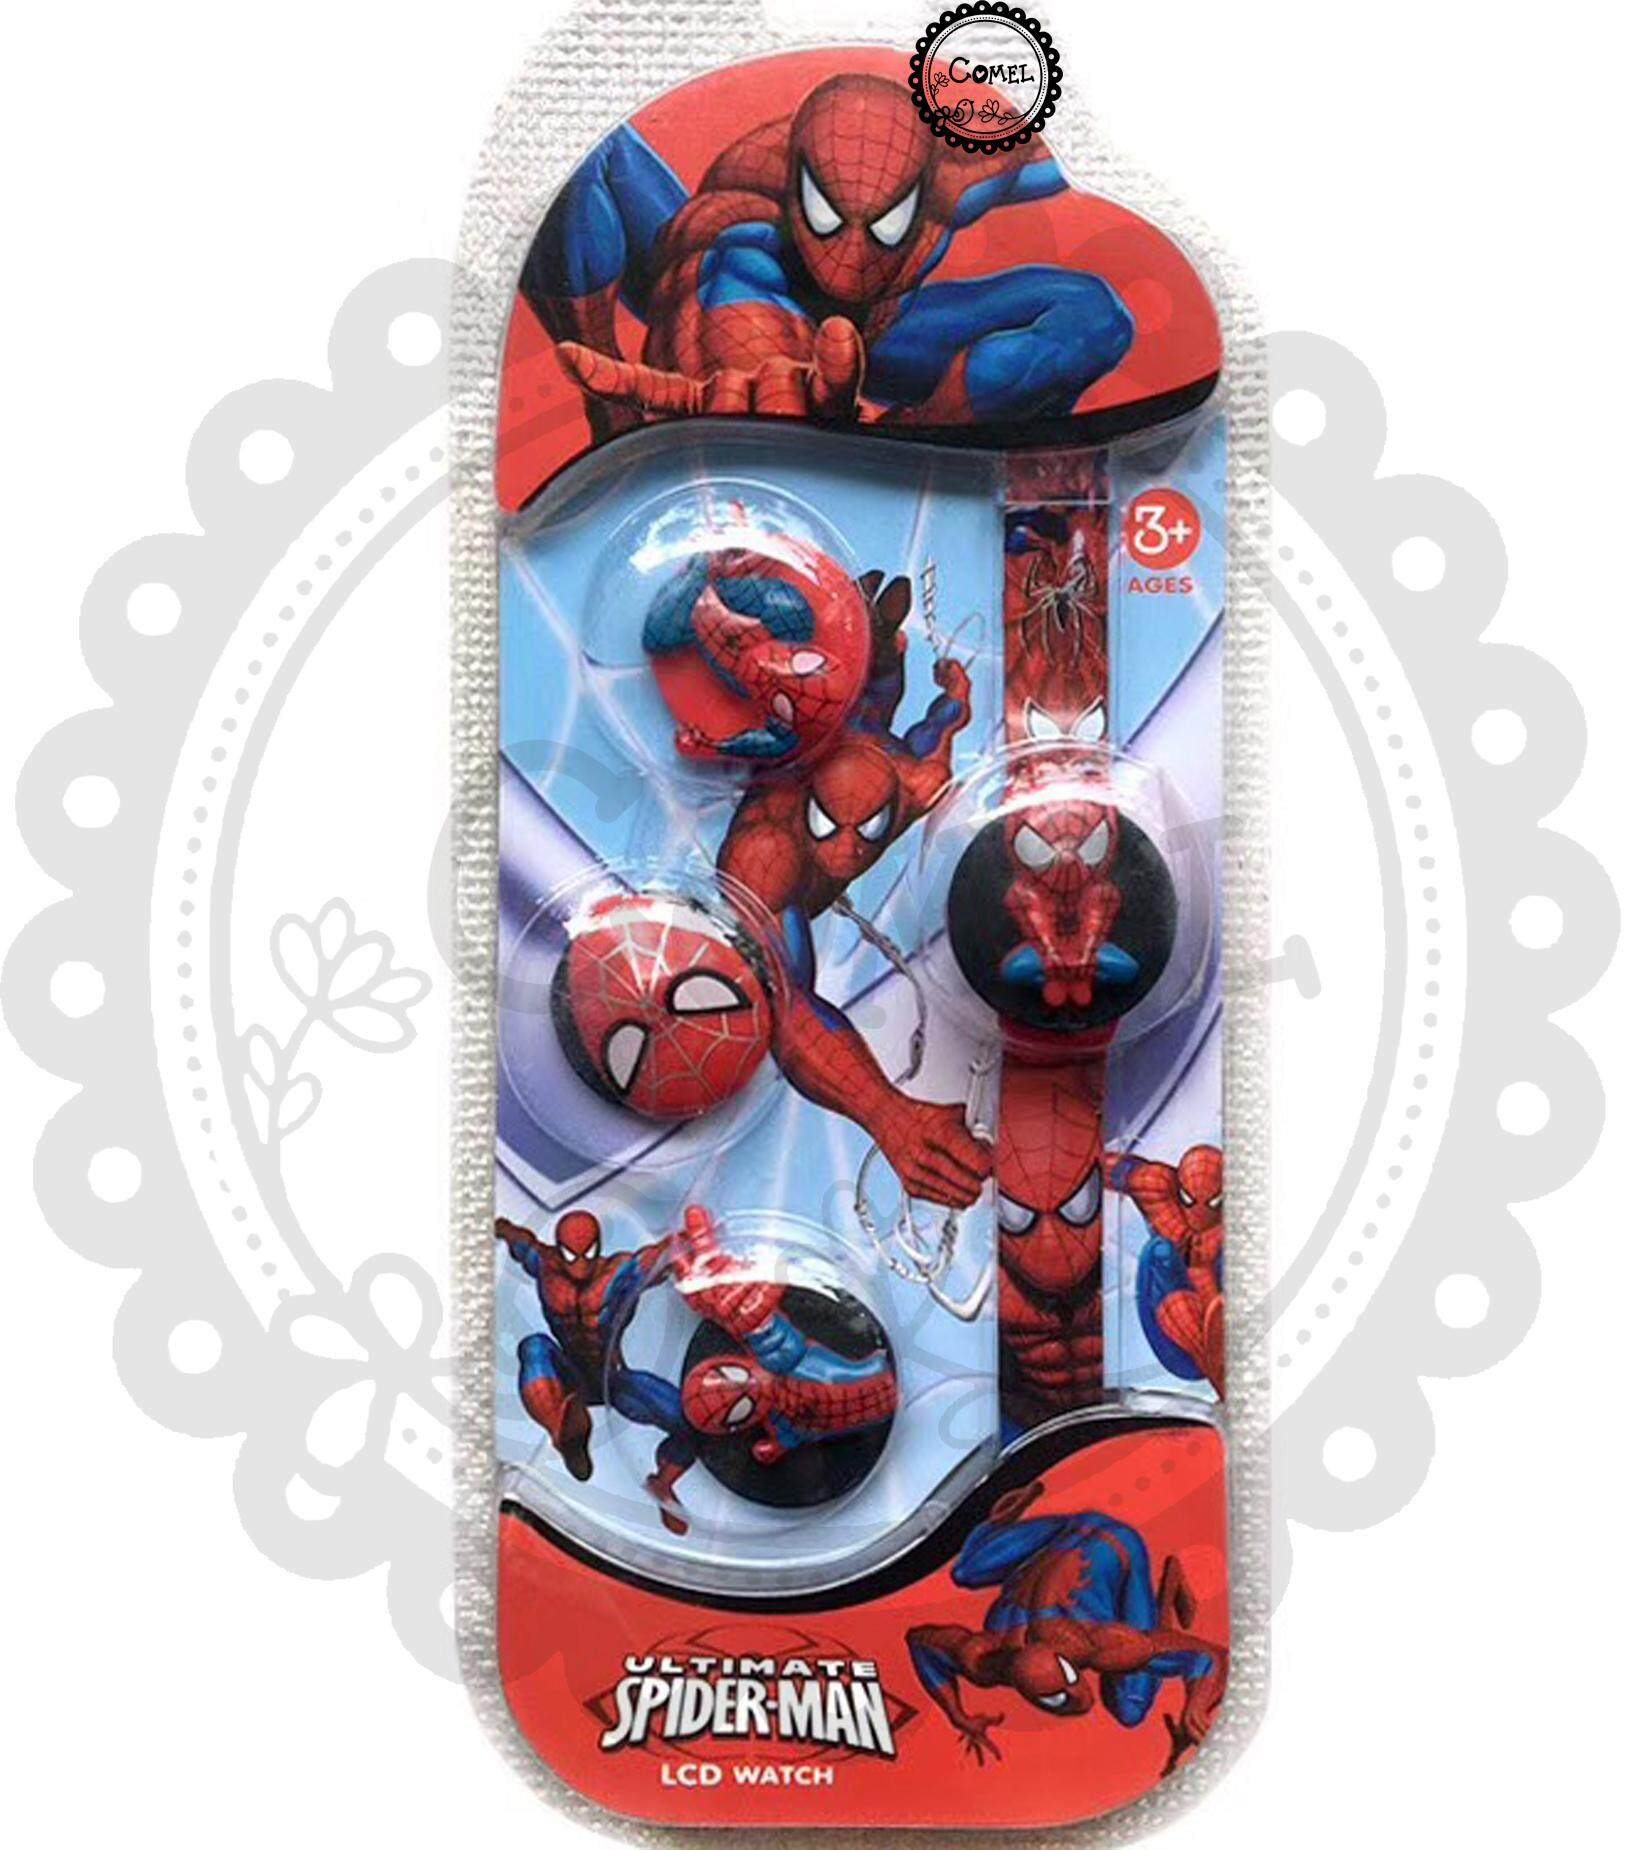 Comel Spiderman Toy Watch Malaysia